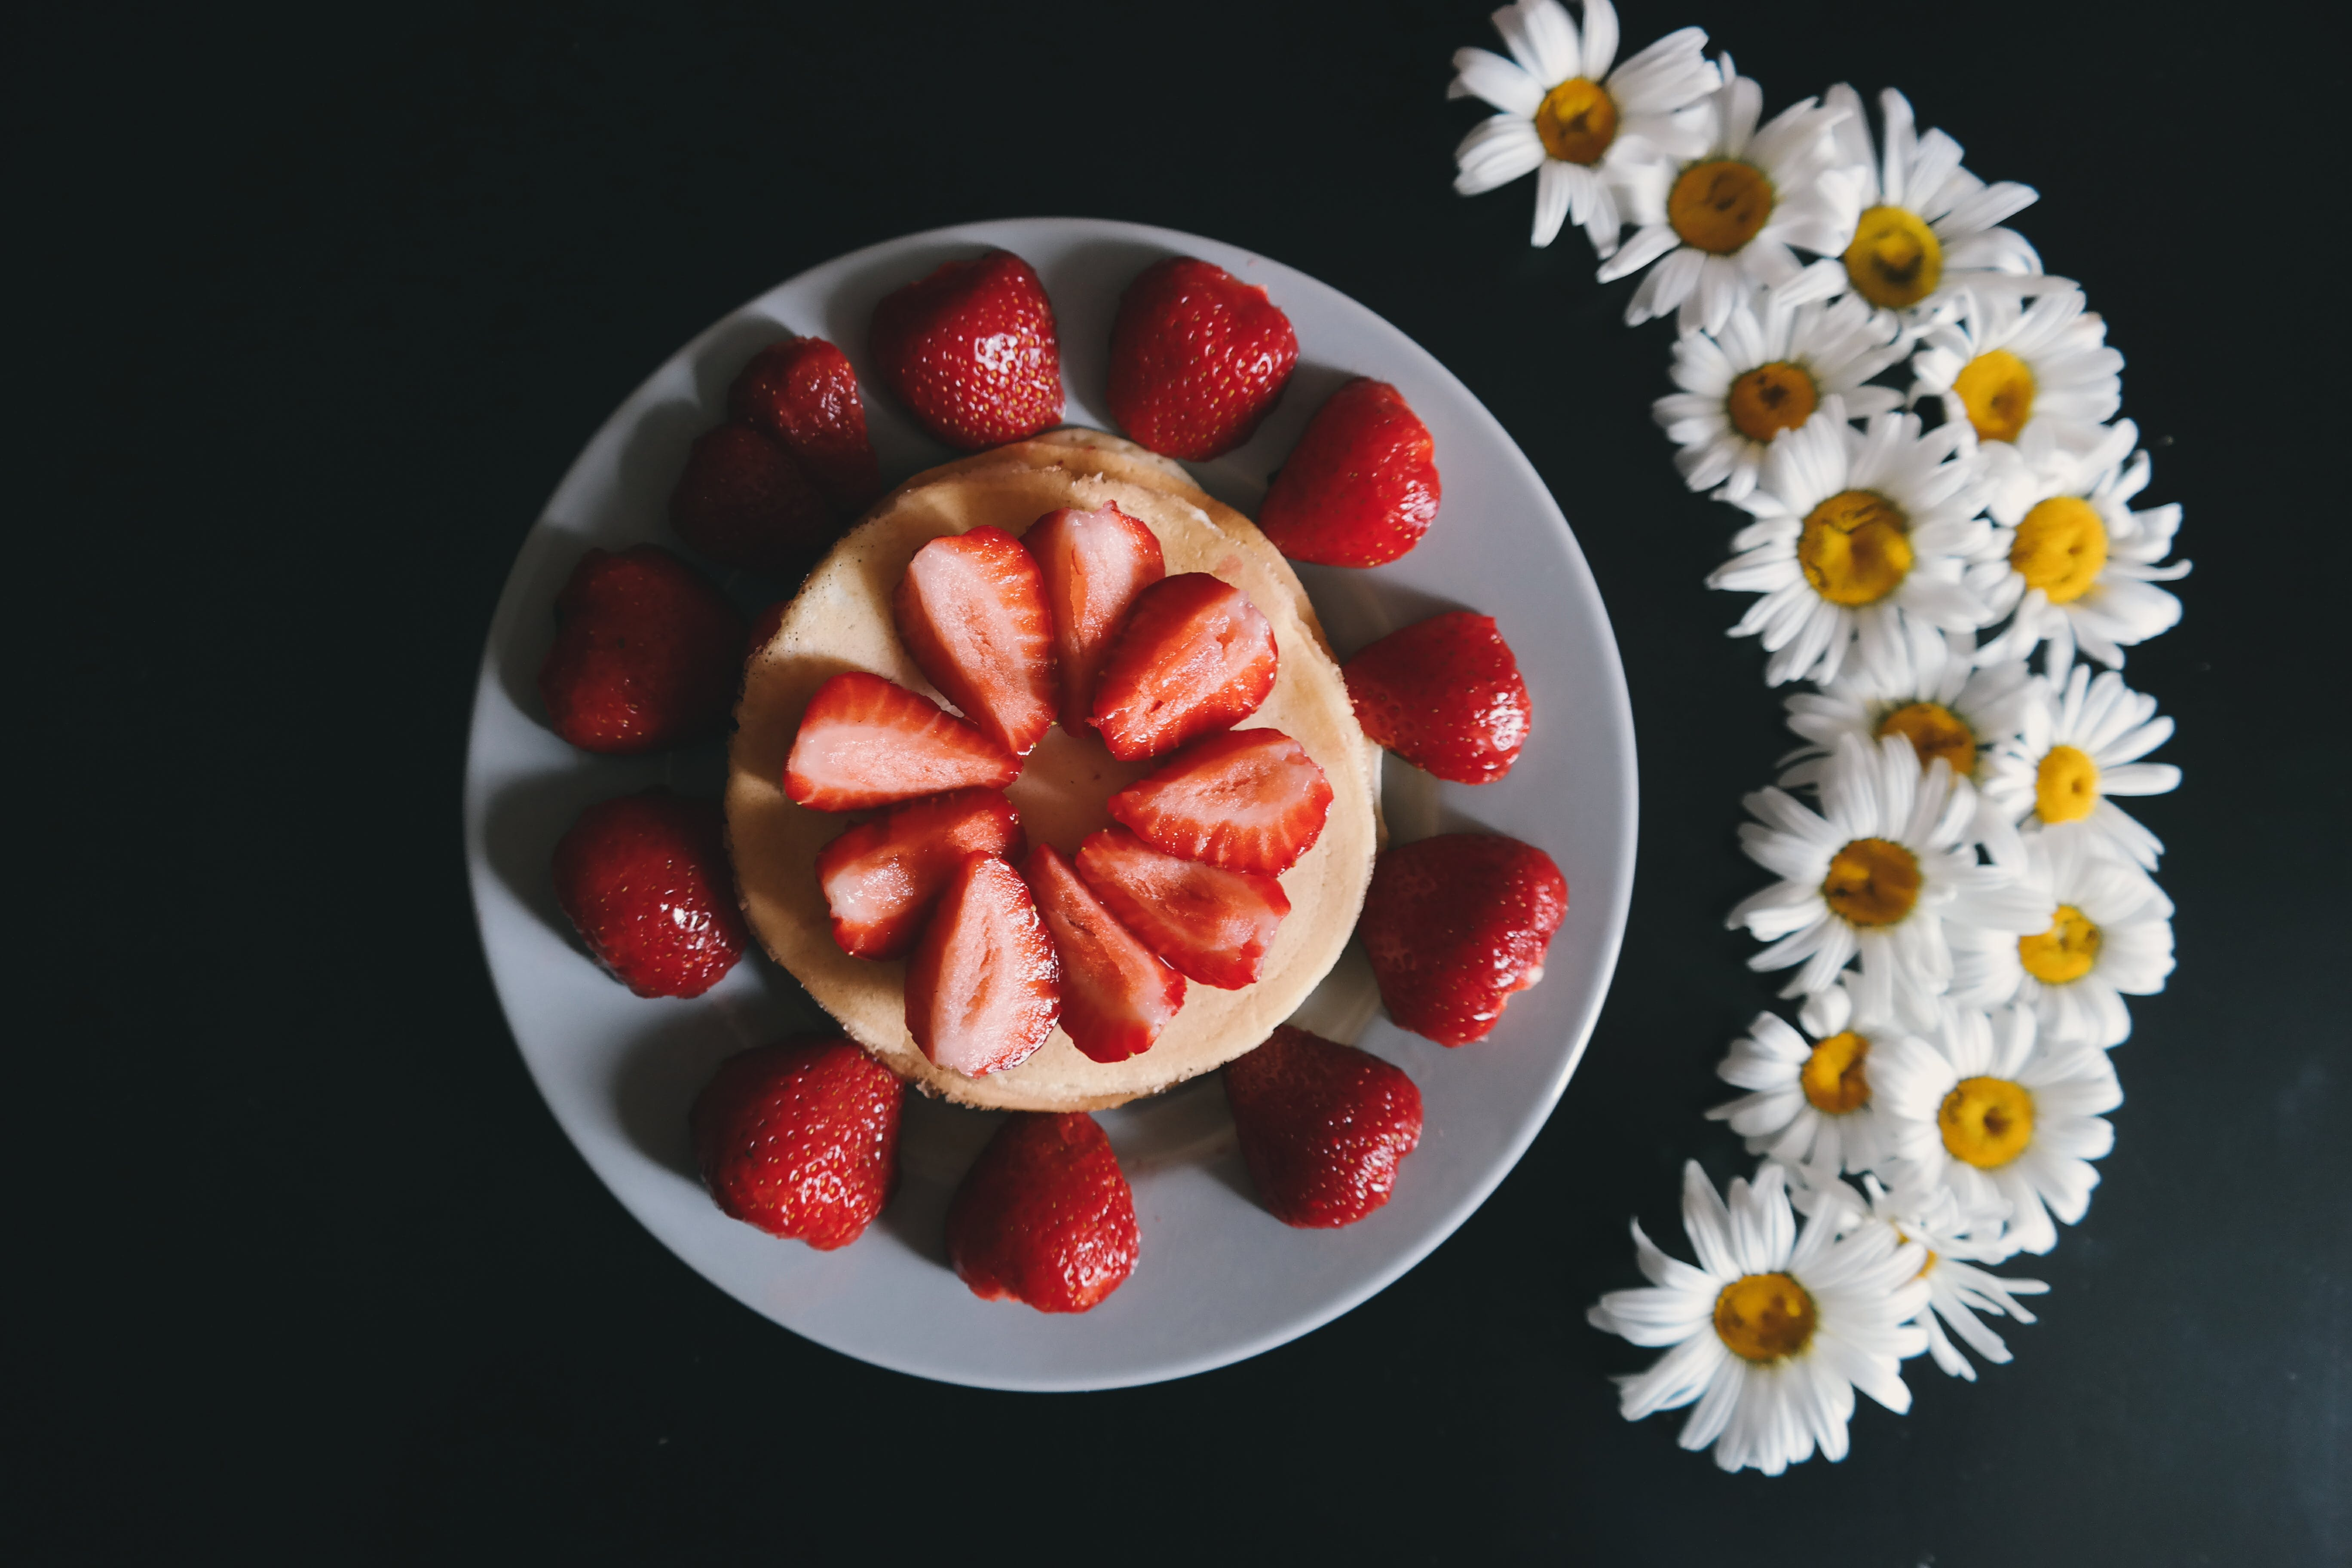 Free stock photo of food, plate, flowers, table